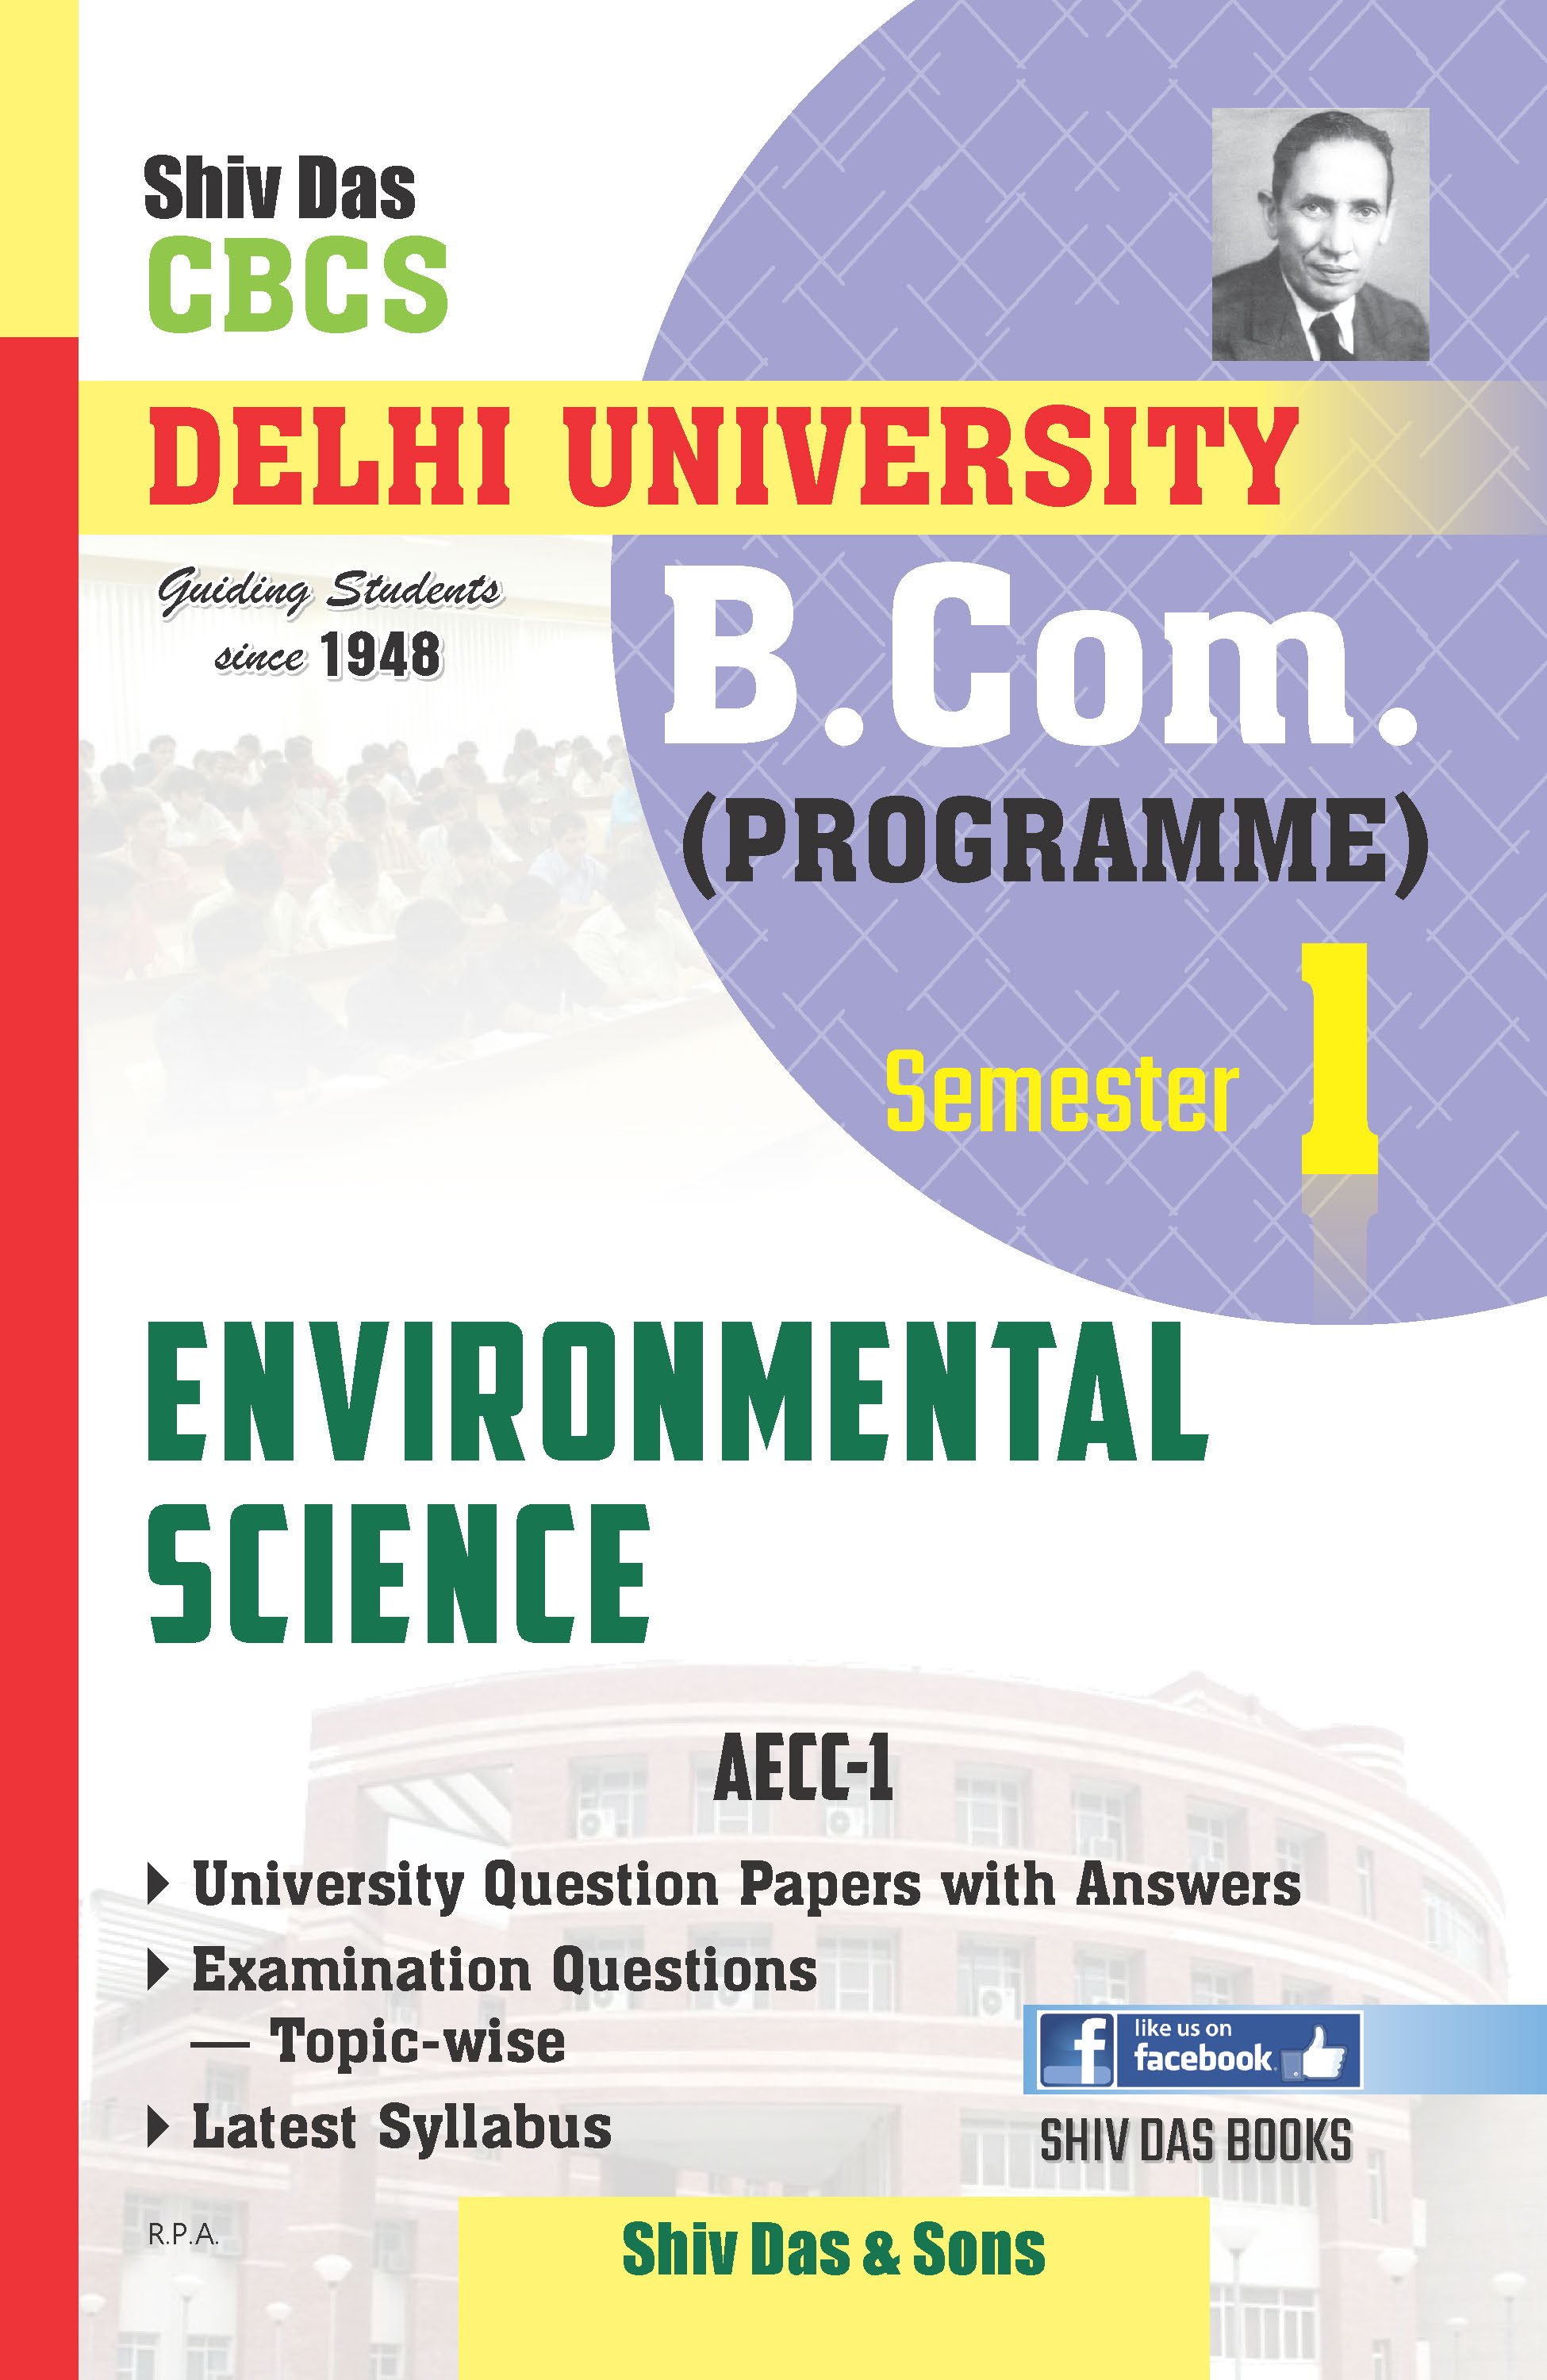 Environmental Science for B.Com Prog Semester 1 for Delhi University by Shiv Das